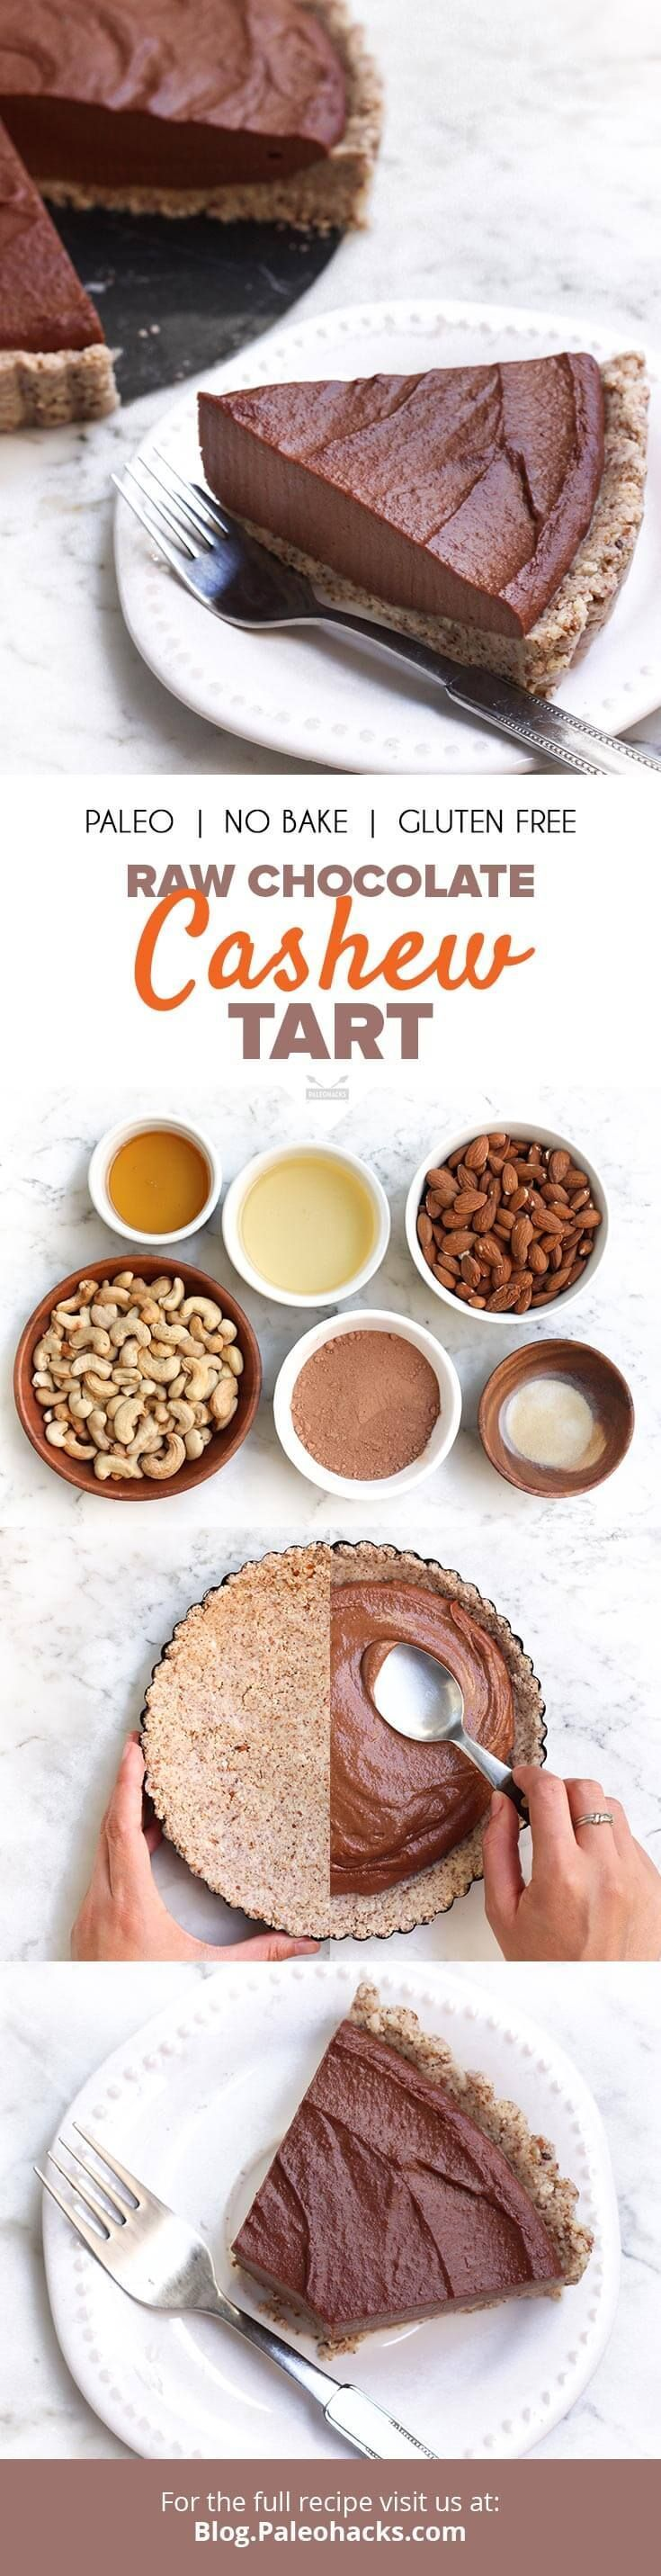 This Raw Chocolate Cashew Tart has a crunchy almond crust with a rich, creamy cashew-chocolate filling. Get the recipe here: http://paleo.co/rawchoctart